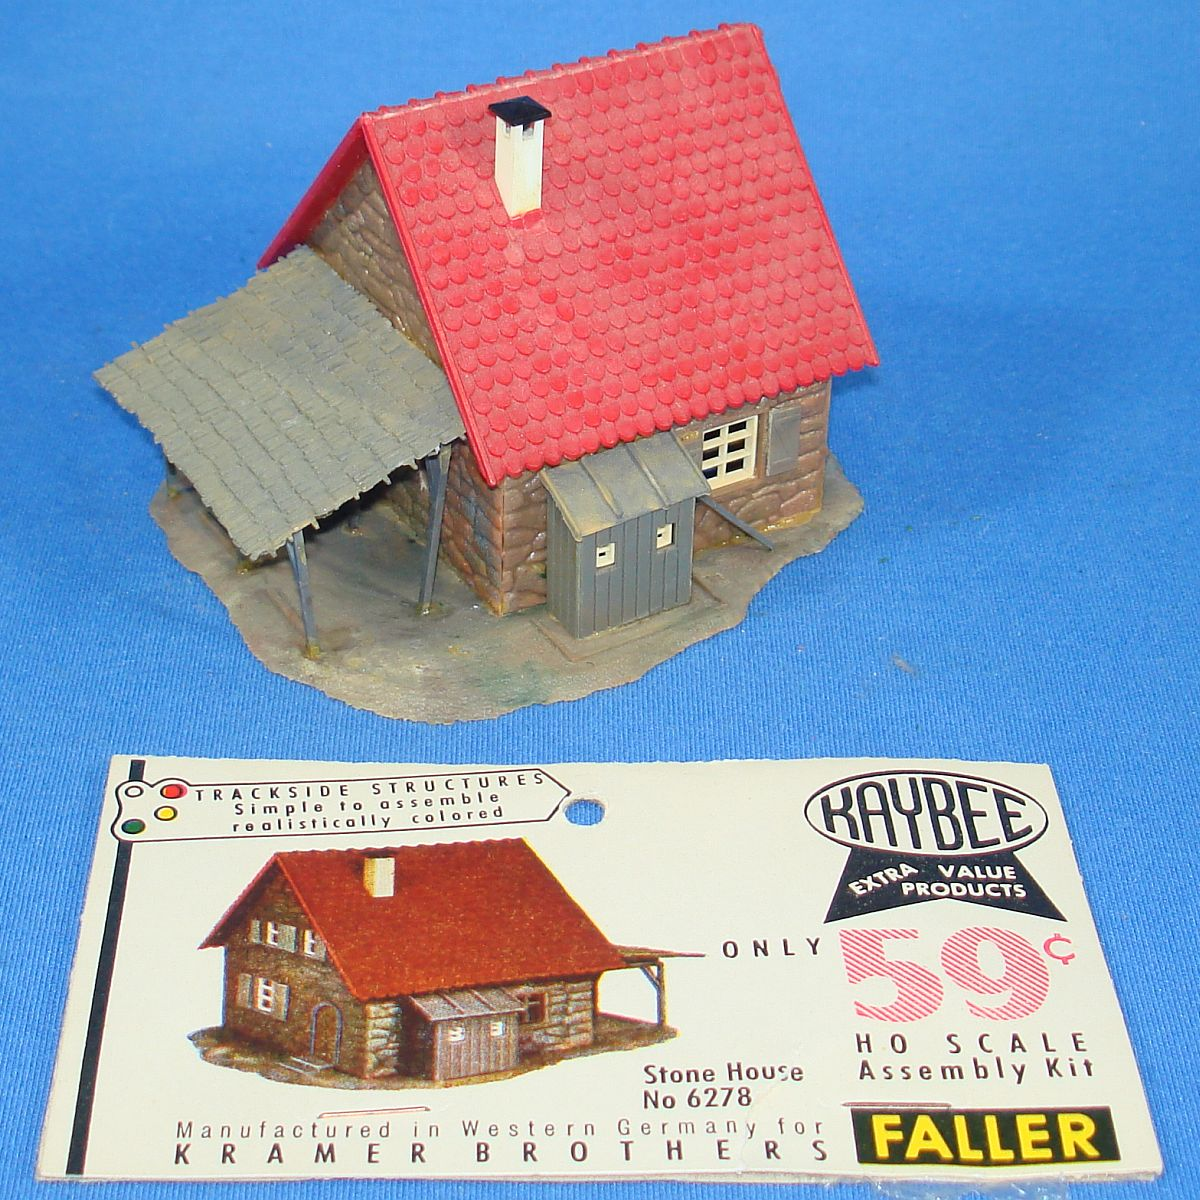 Faller Kaybee Kramer Brothers Trackside Structures HO Scale Assembly Kit Stone House 6278